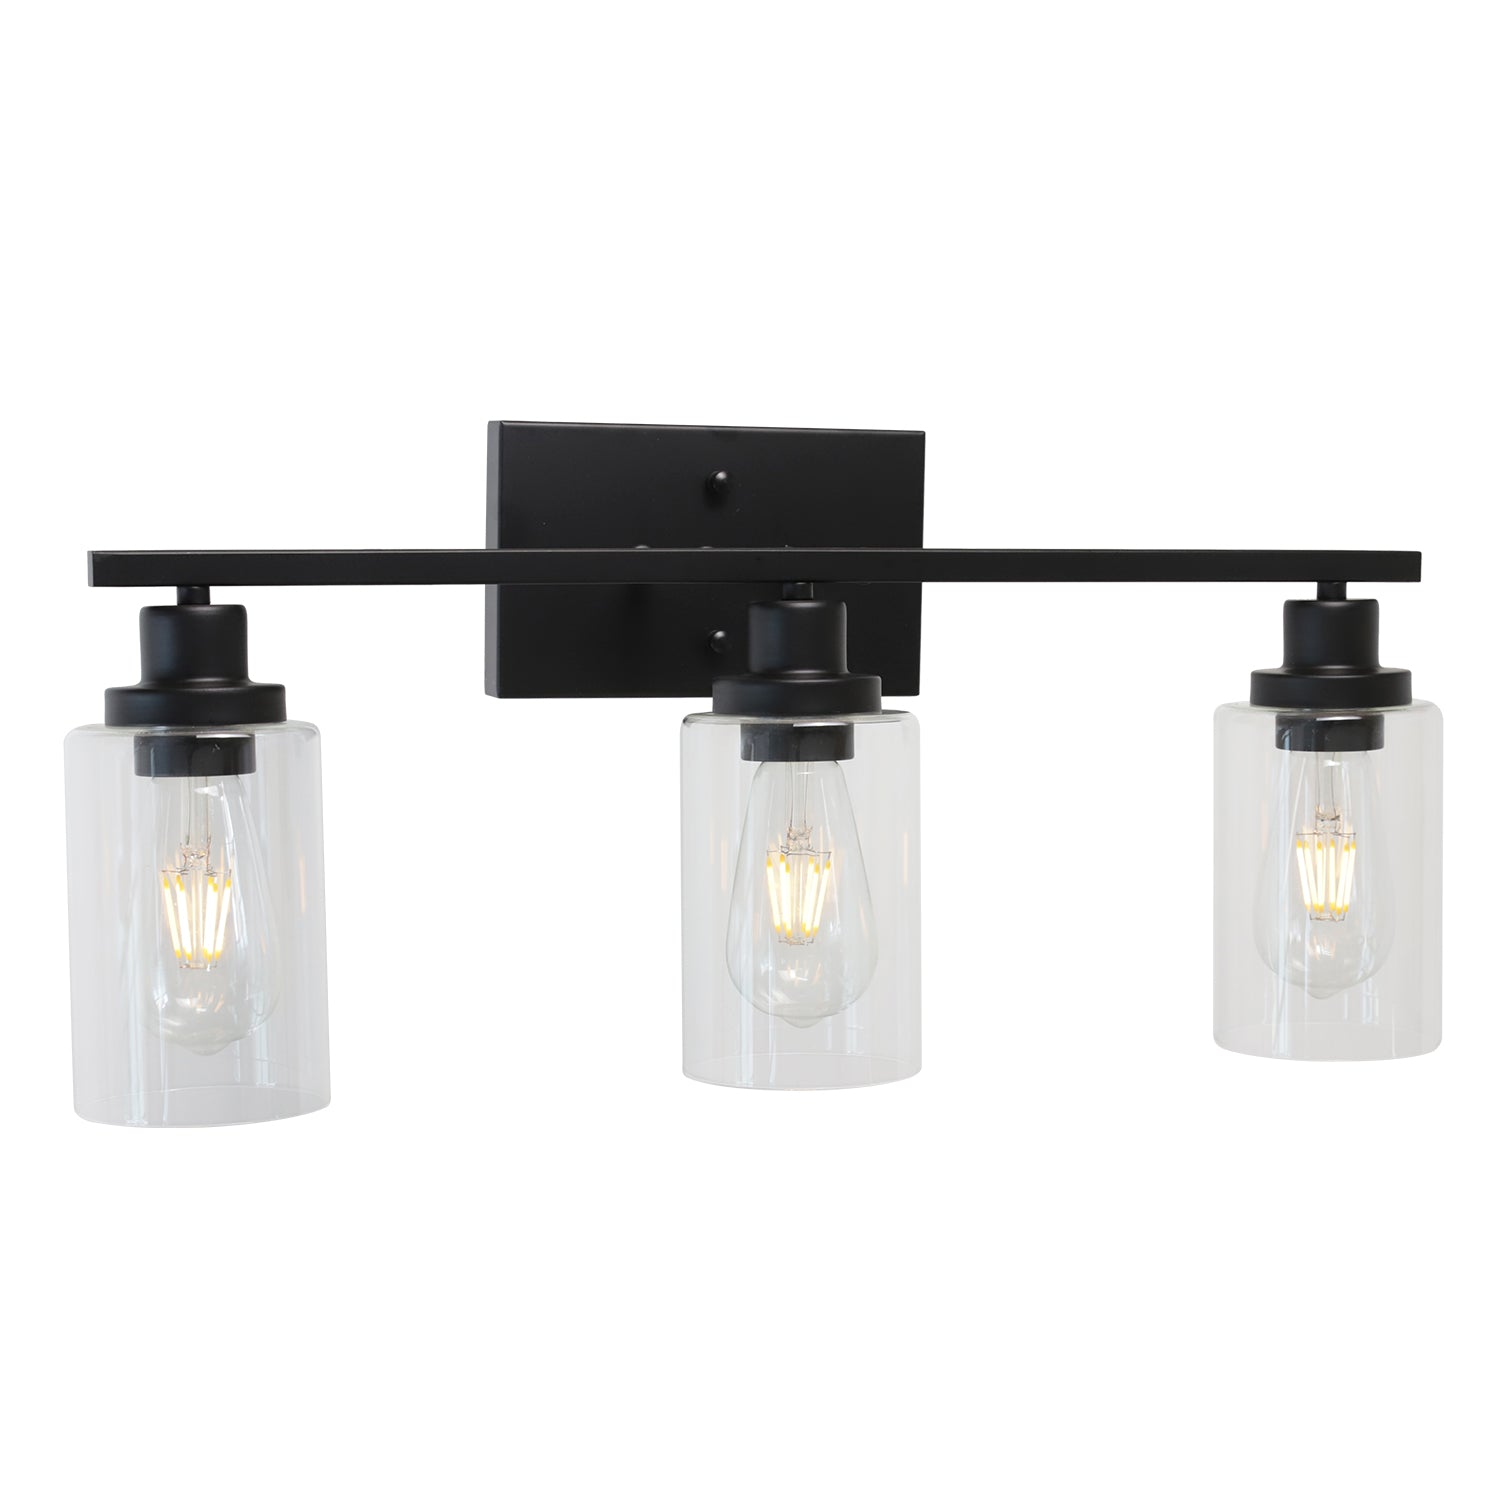 Bathroom Vanity Light Fixtures 3 Lights Wall Sconce Black With Clear Glass Shade Bonlicht Lighting